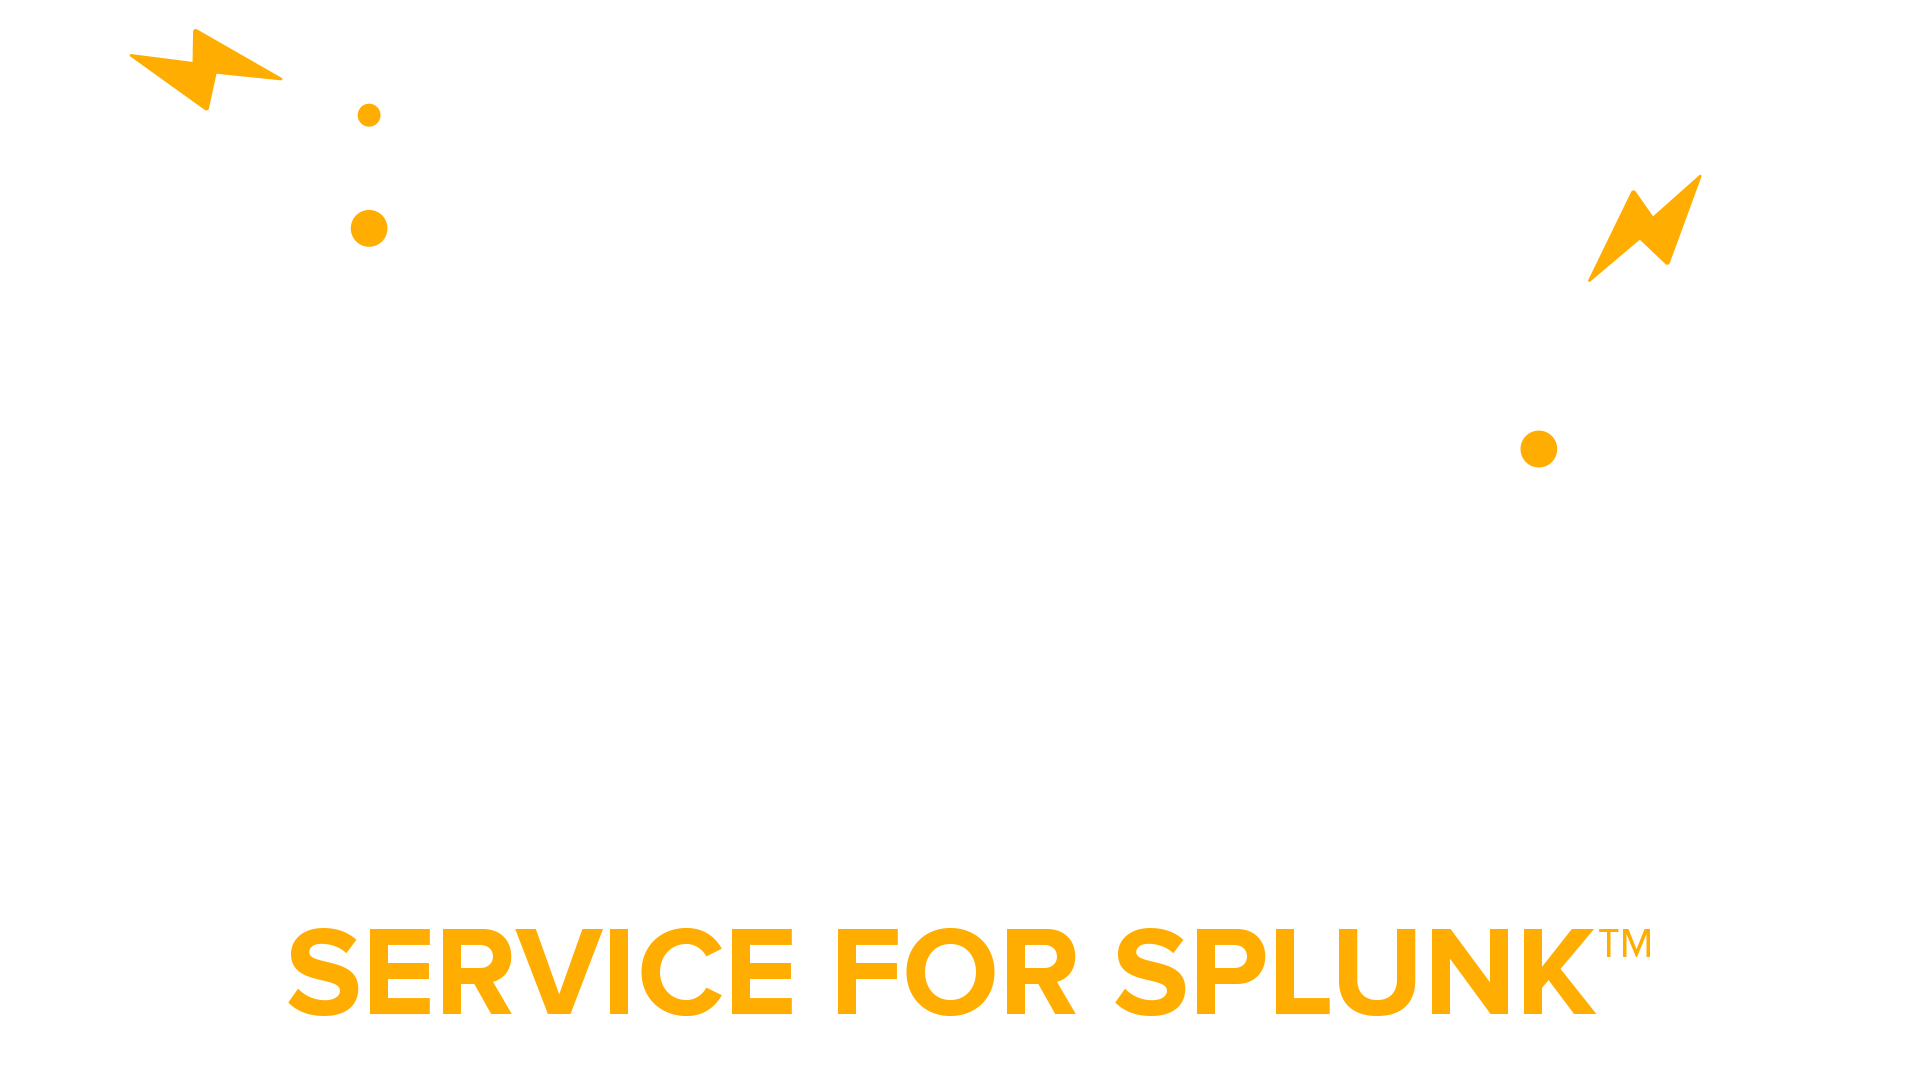 Make Splunk work for you